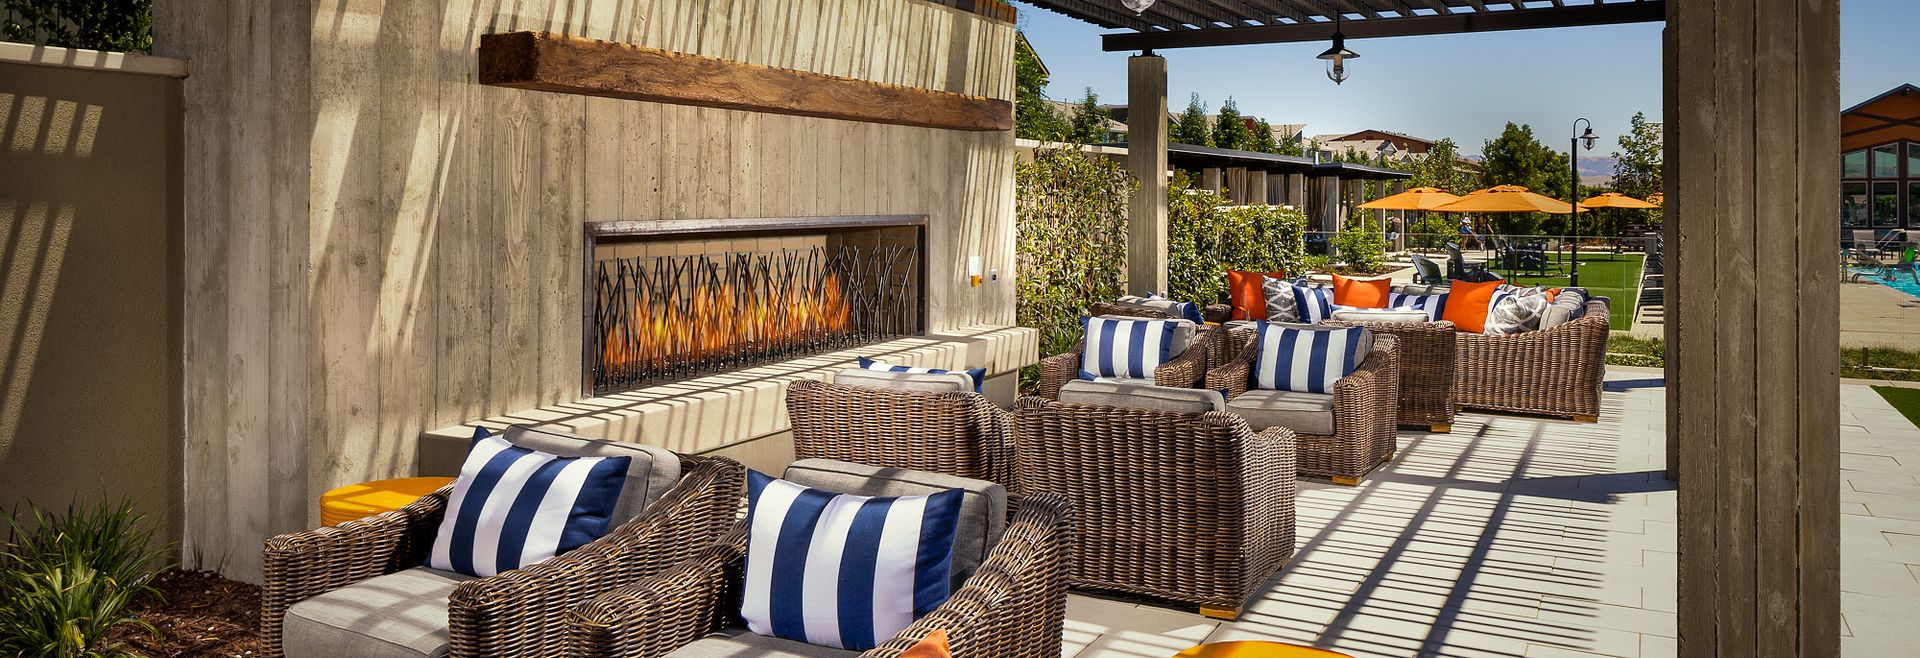 Sage Clubhouse Livermore Outdoor Fireplace